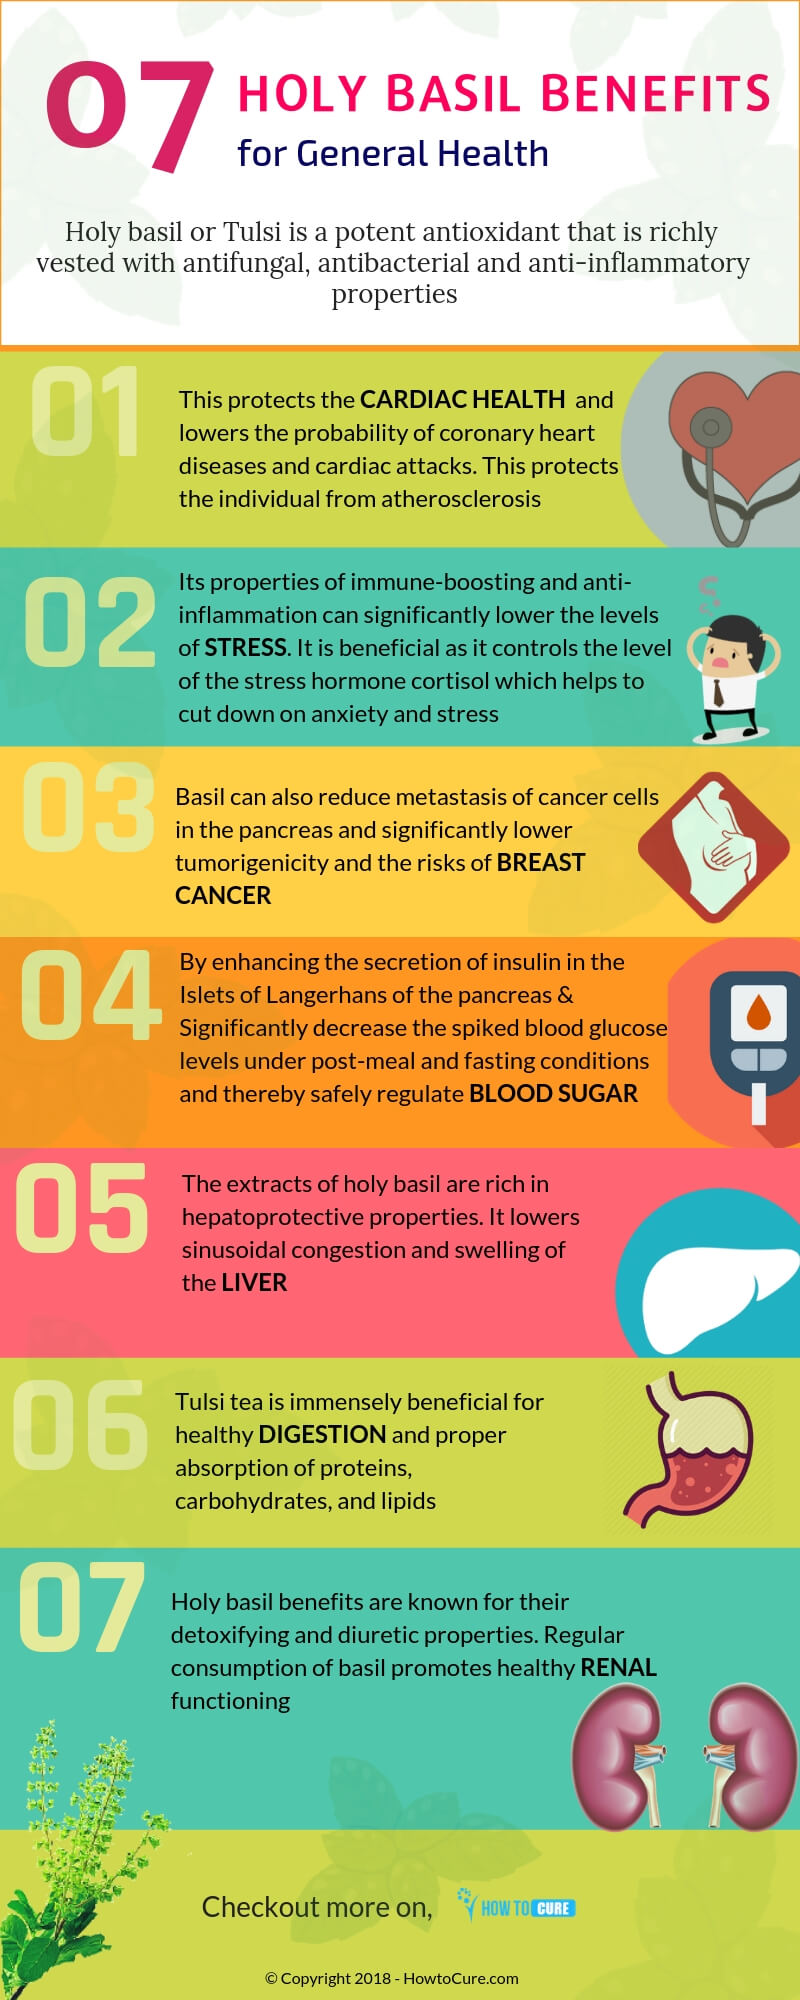 holy basil benefits for general health - infographic